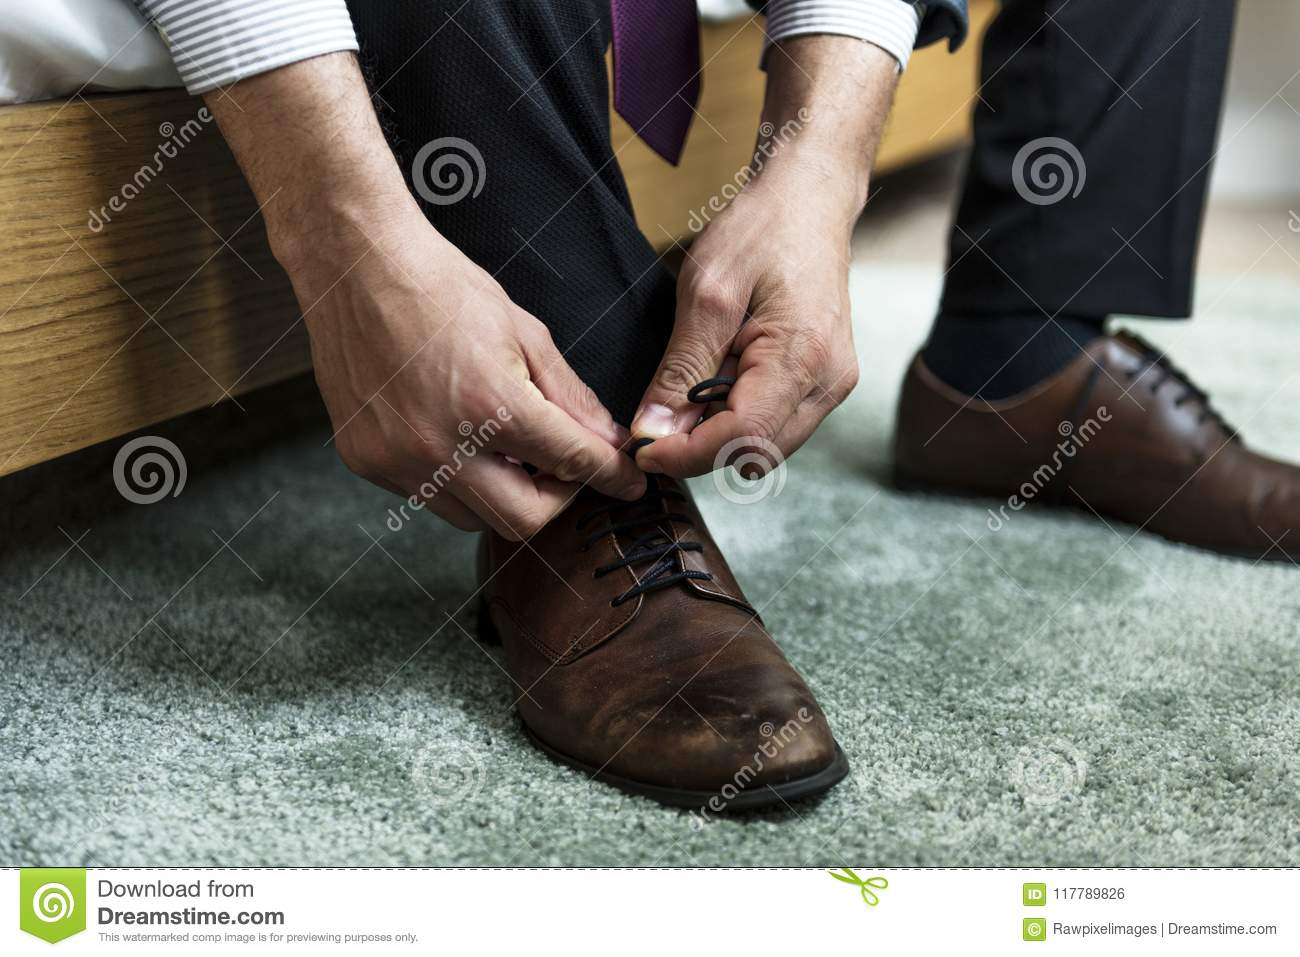 A Man Tying Shoe Lace Stock Photo Image Of Unlace Formal 117789826